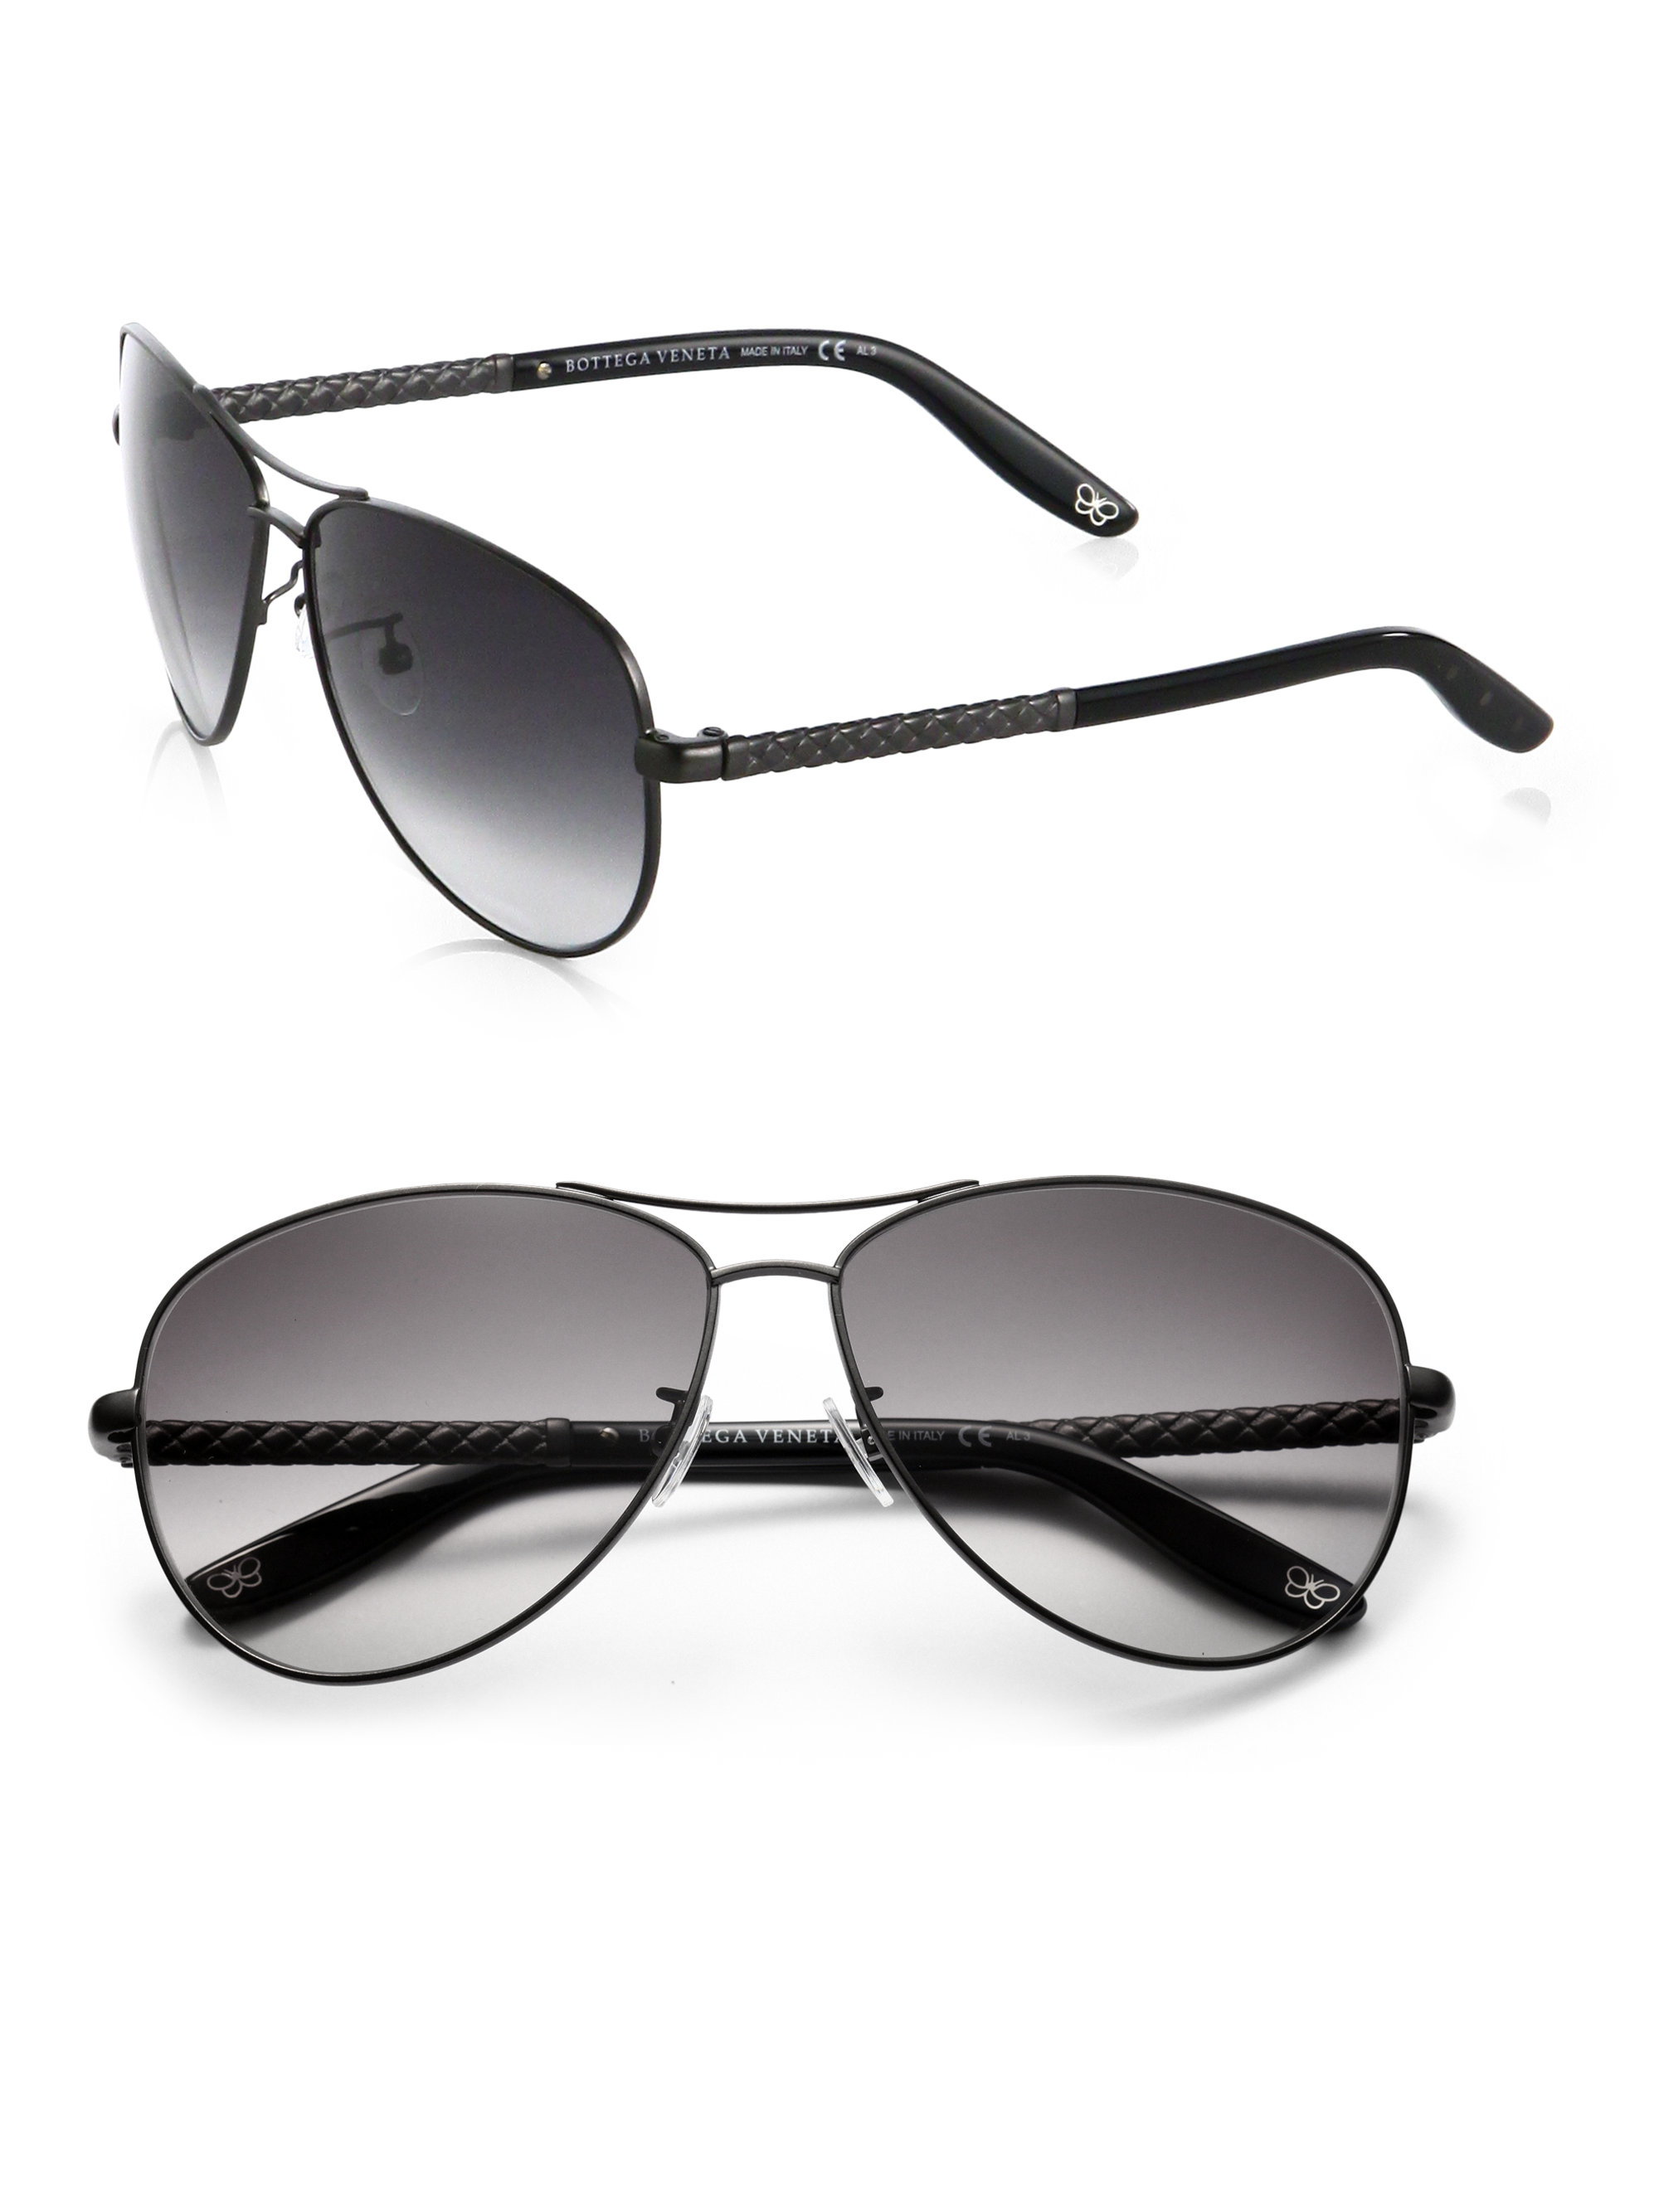 7f469981e8 Cheap Aviator Tortoise Shell Sunglasses « One More Soul